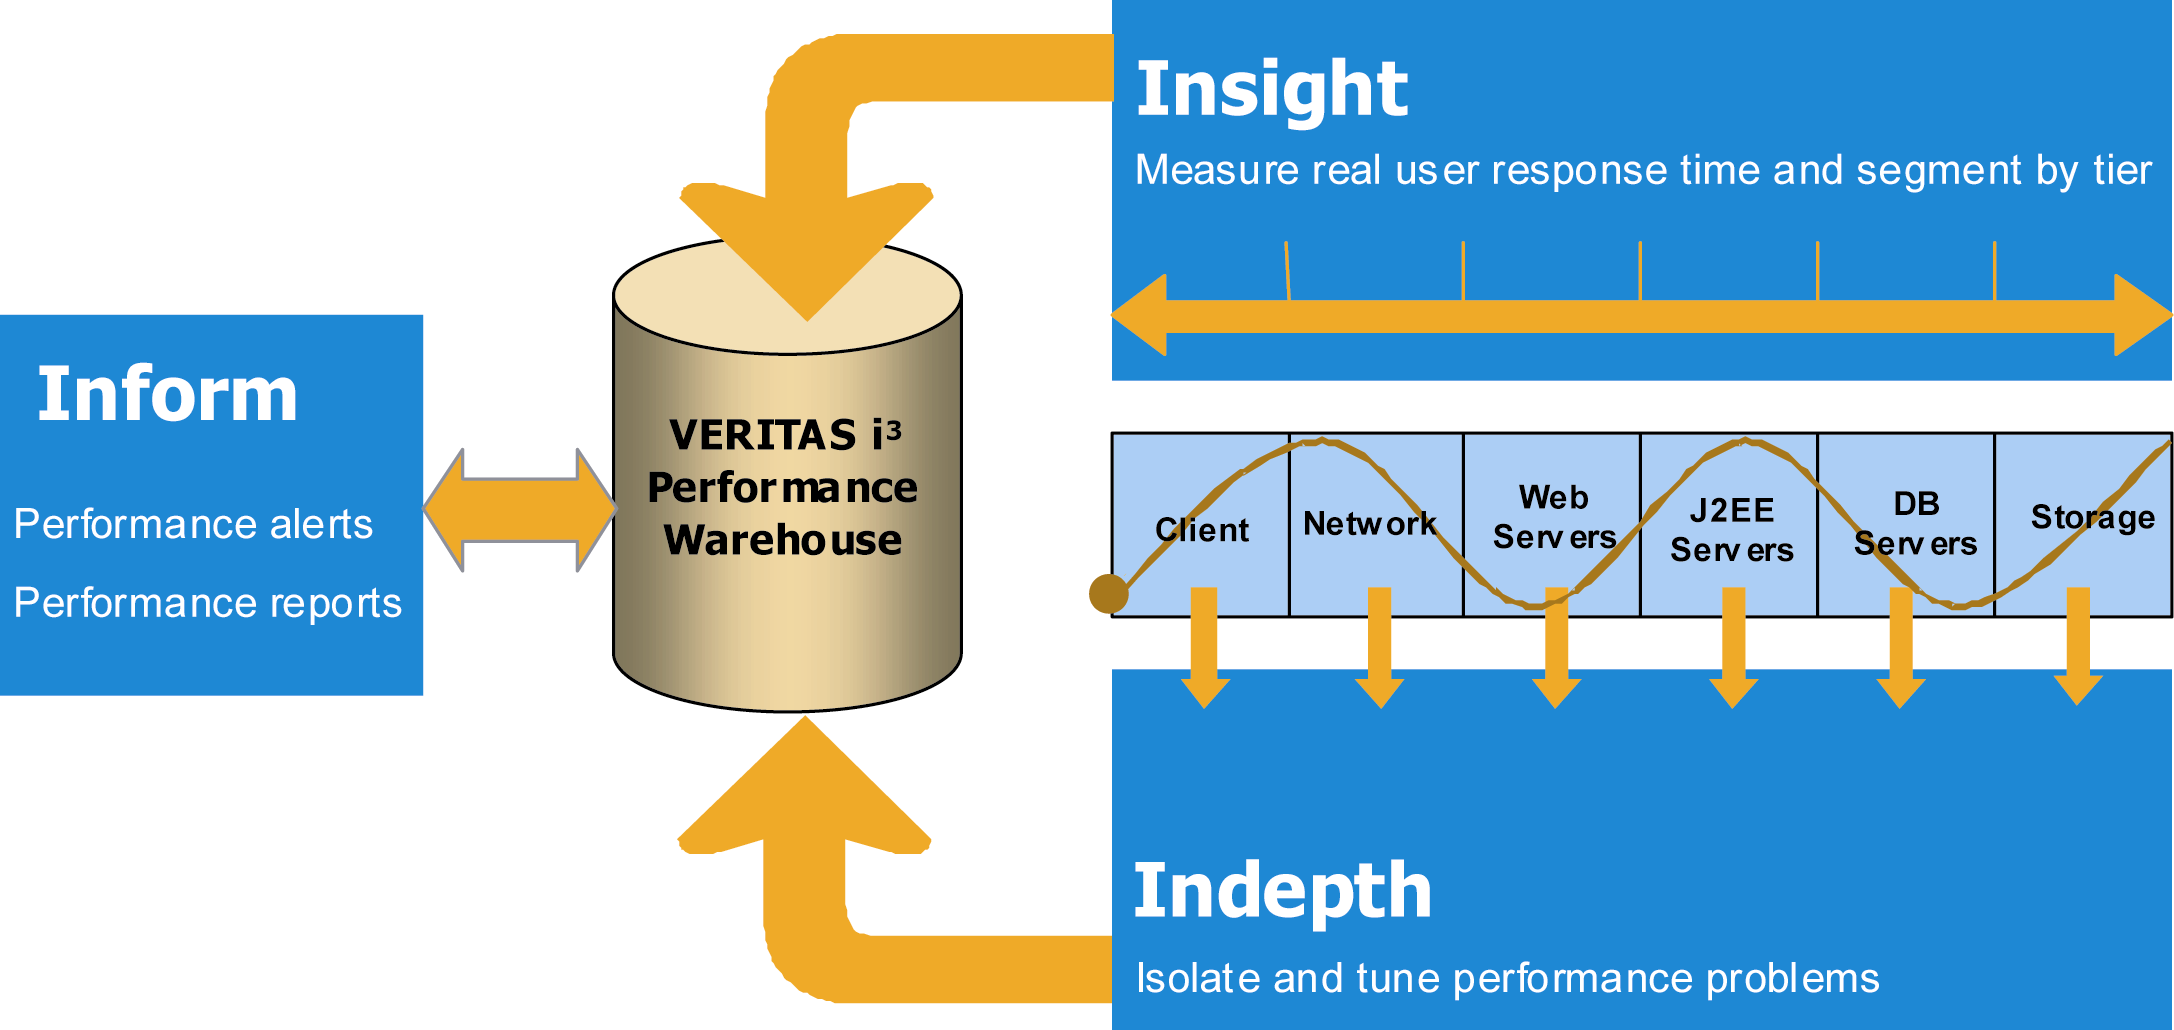 ! VERITAS Inform is the i 3 product component that provides performance reporting and alerting functions.